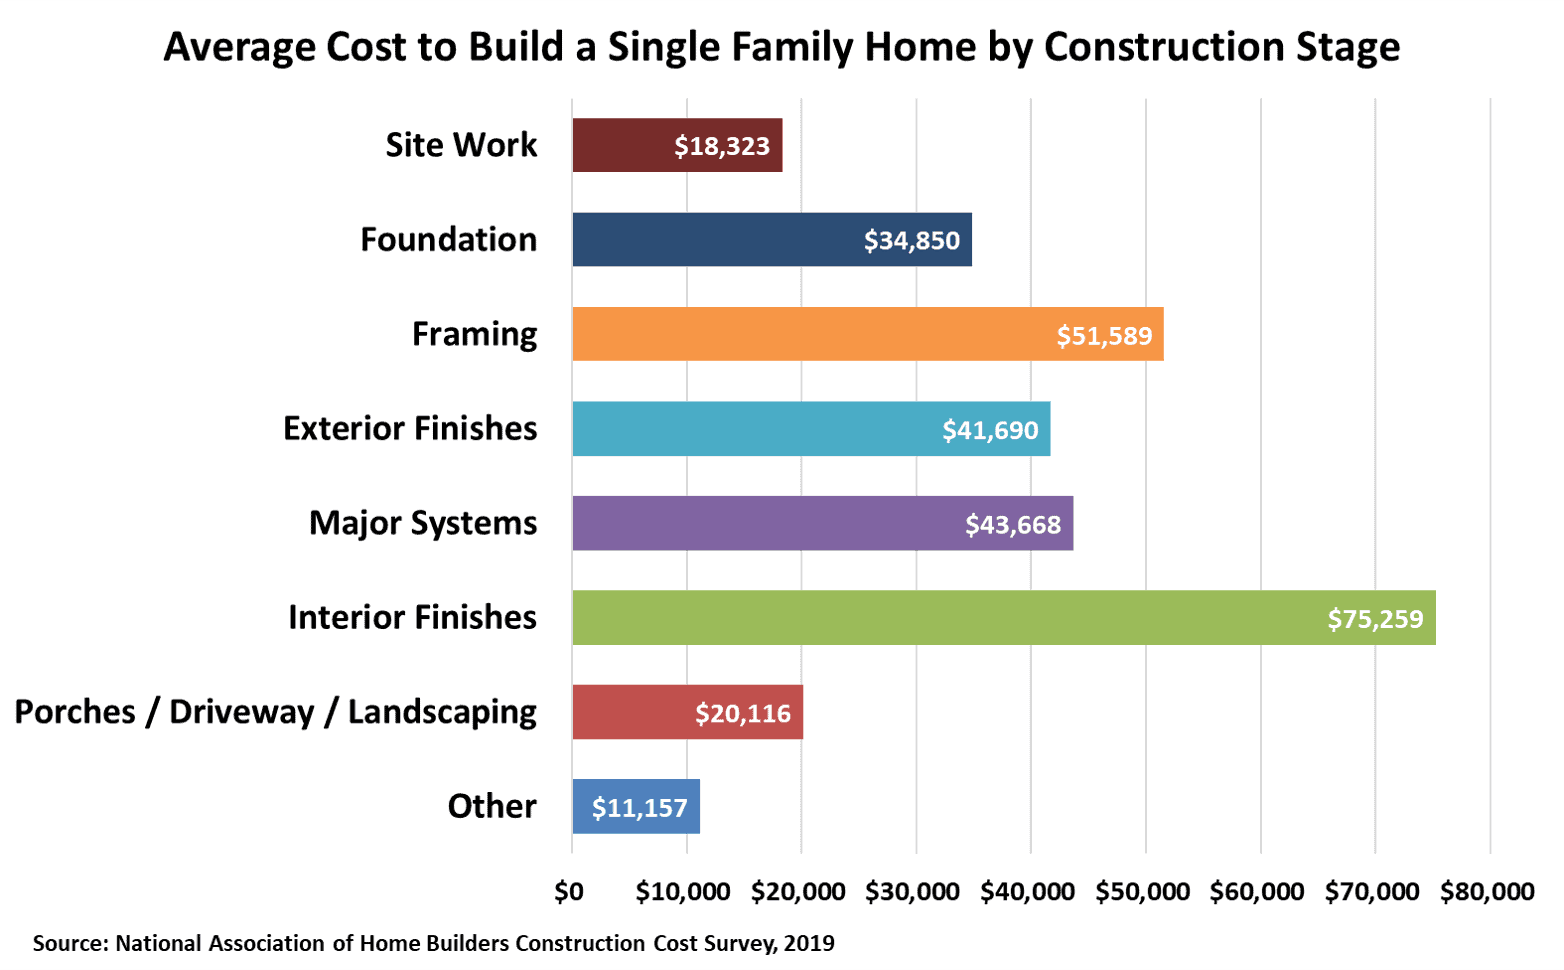 Chart of Average Cost to Build a Single-Family Home by Construction Stage in US